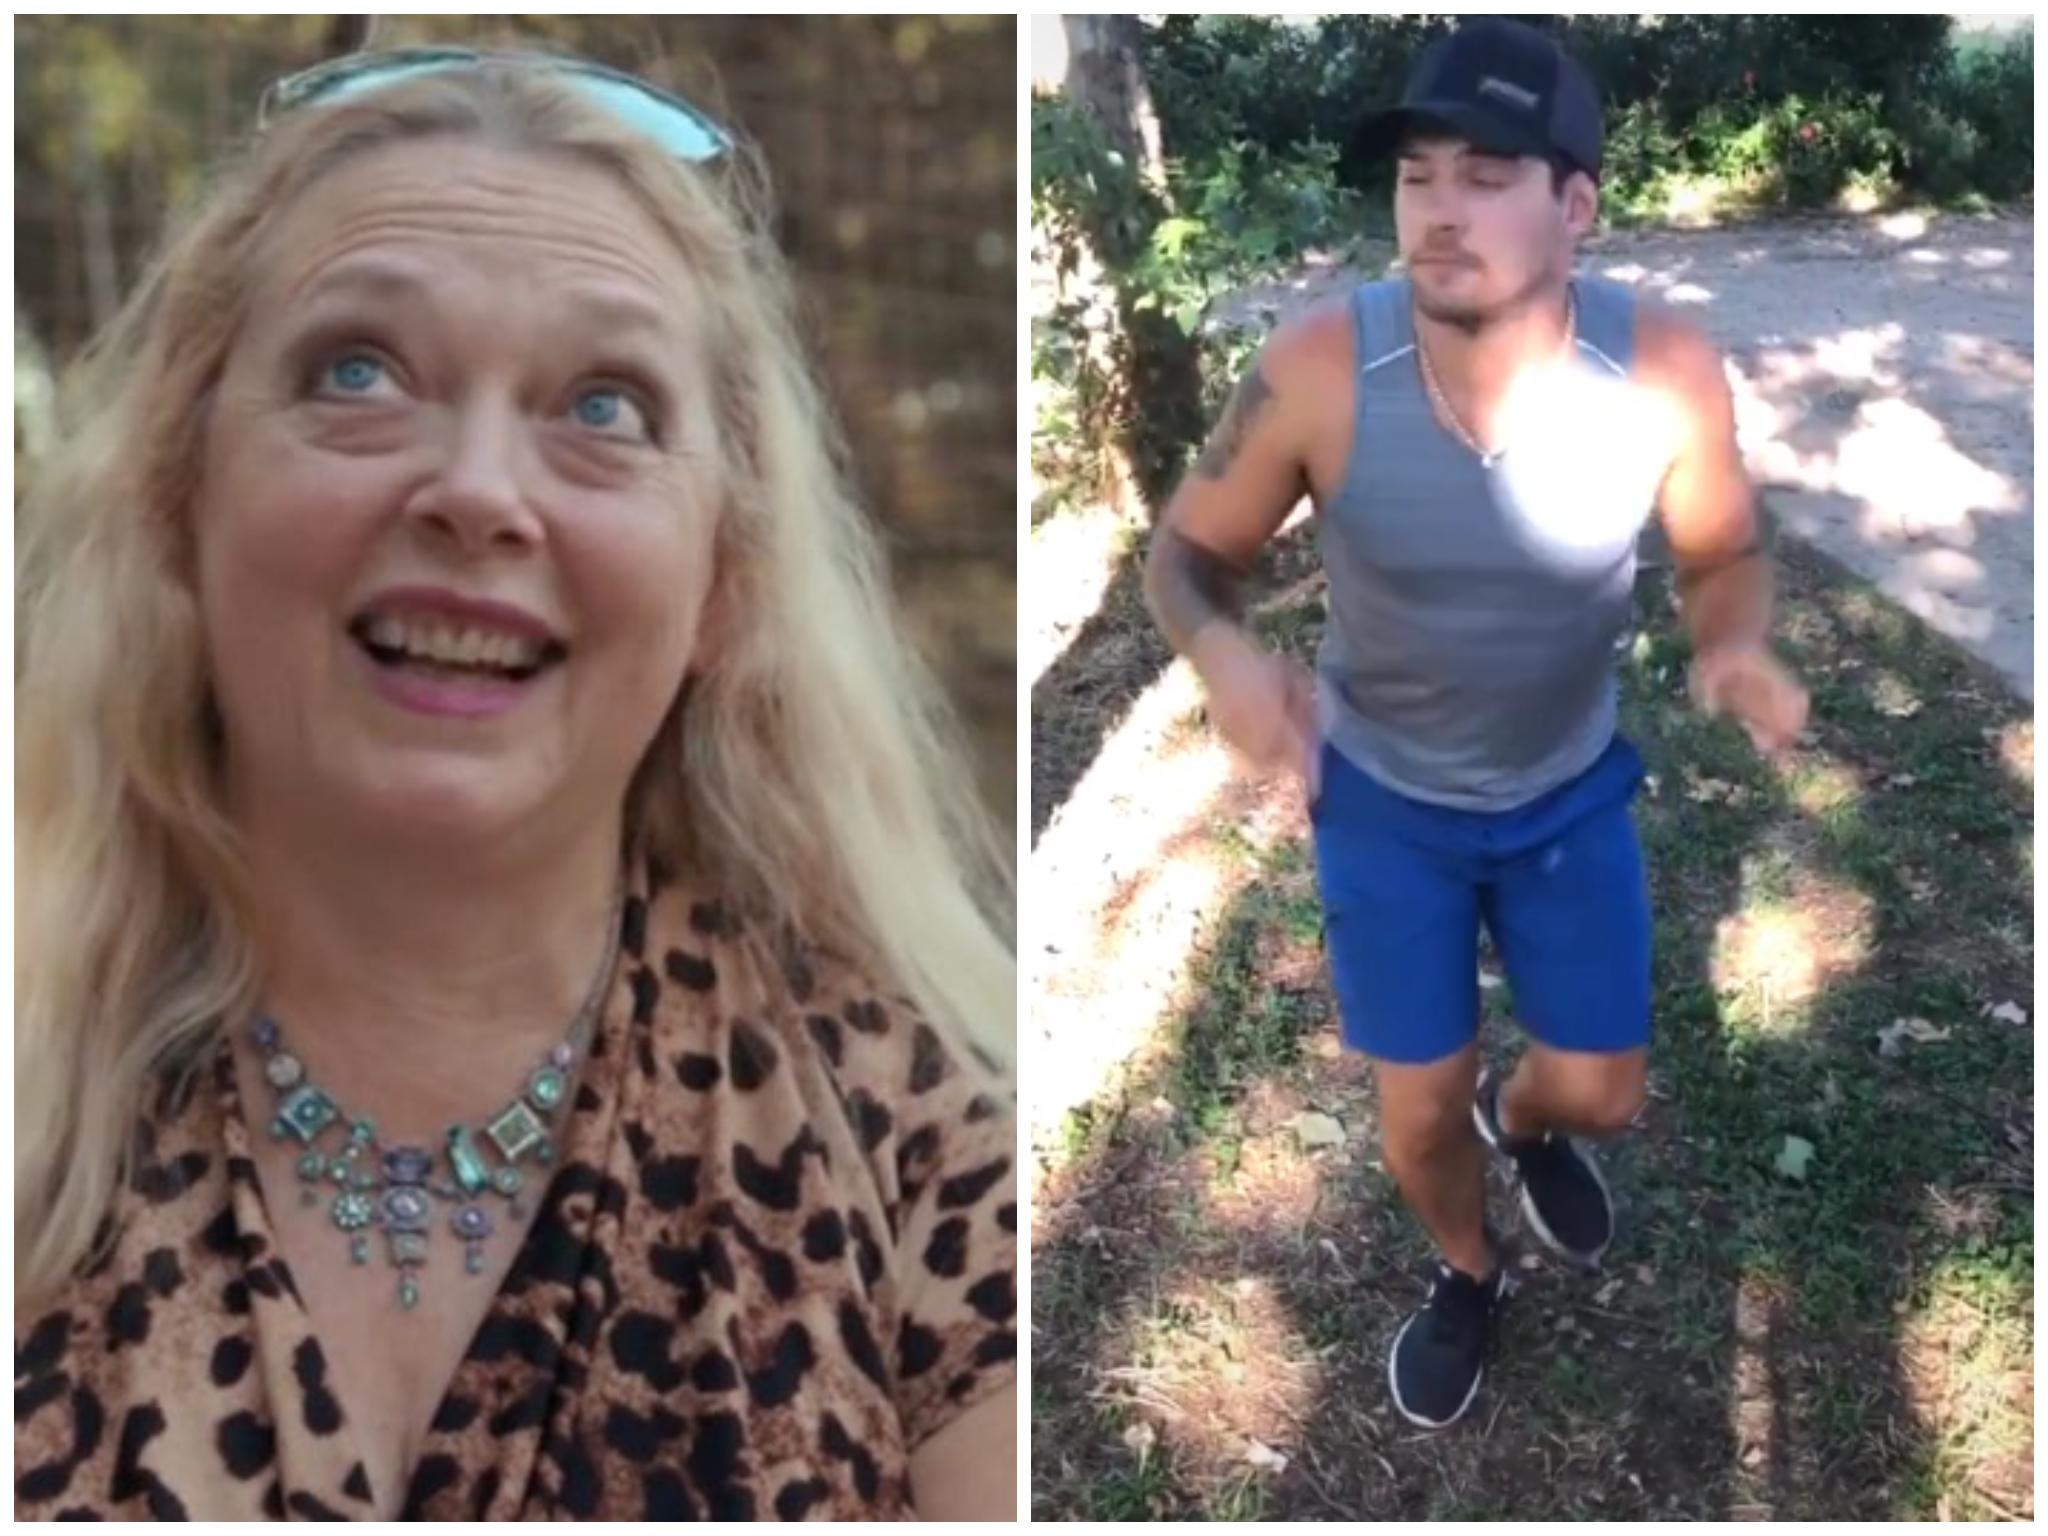 Tiger King fans react as Dillon Passage completes 'Savage' Carole Baskin TikTok challenge